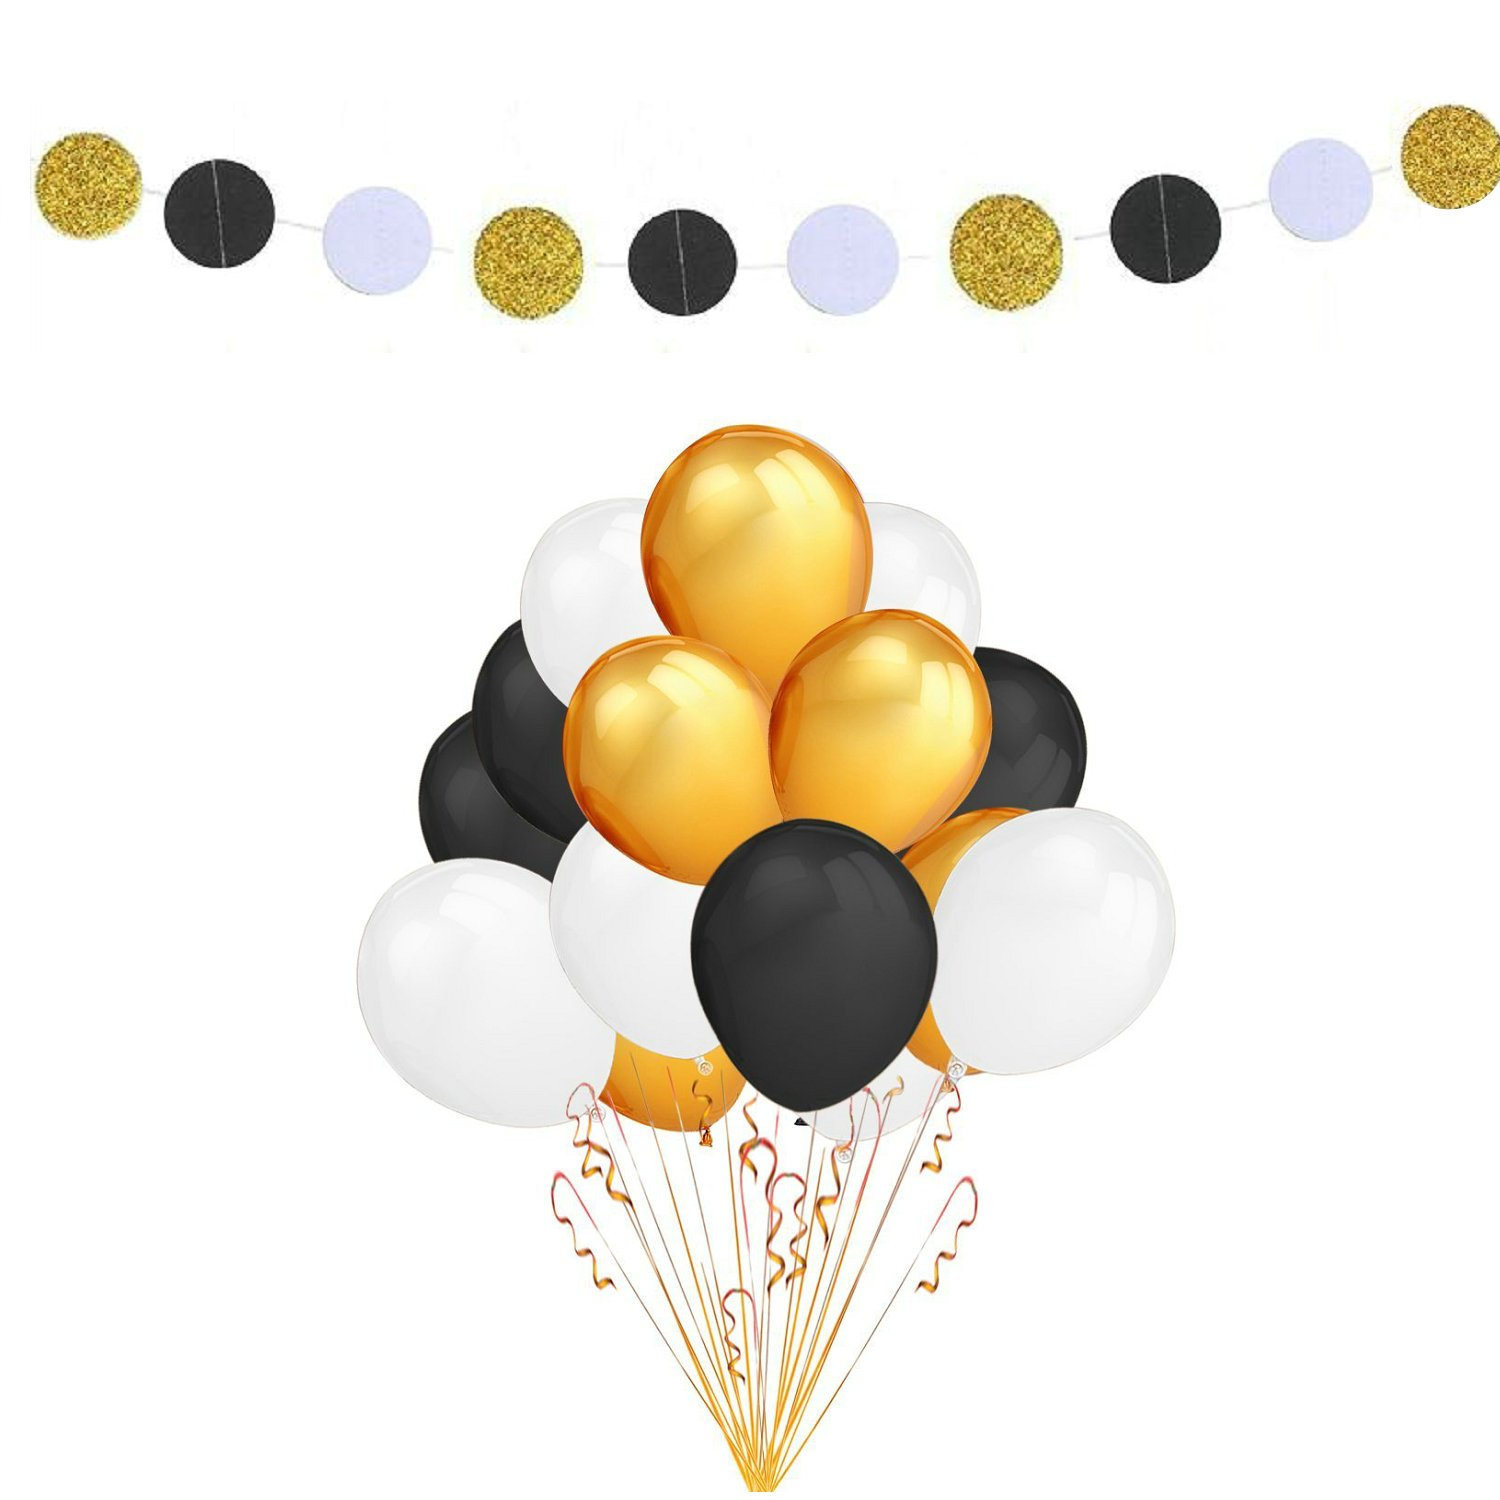 Fascola 100 Pack 12 Inches Ultra Thickness Gold & Black & White Color Latex Party Balloons with White Black Gold Polka Dot Garland for Party Decorations